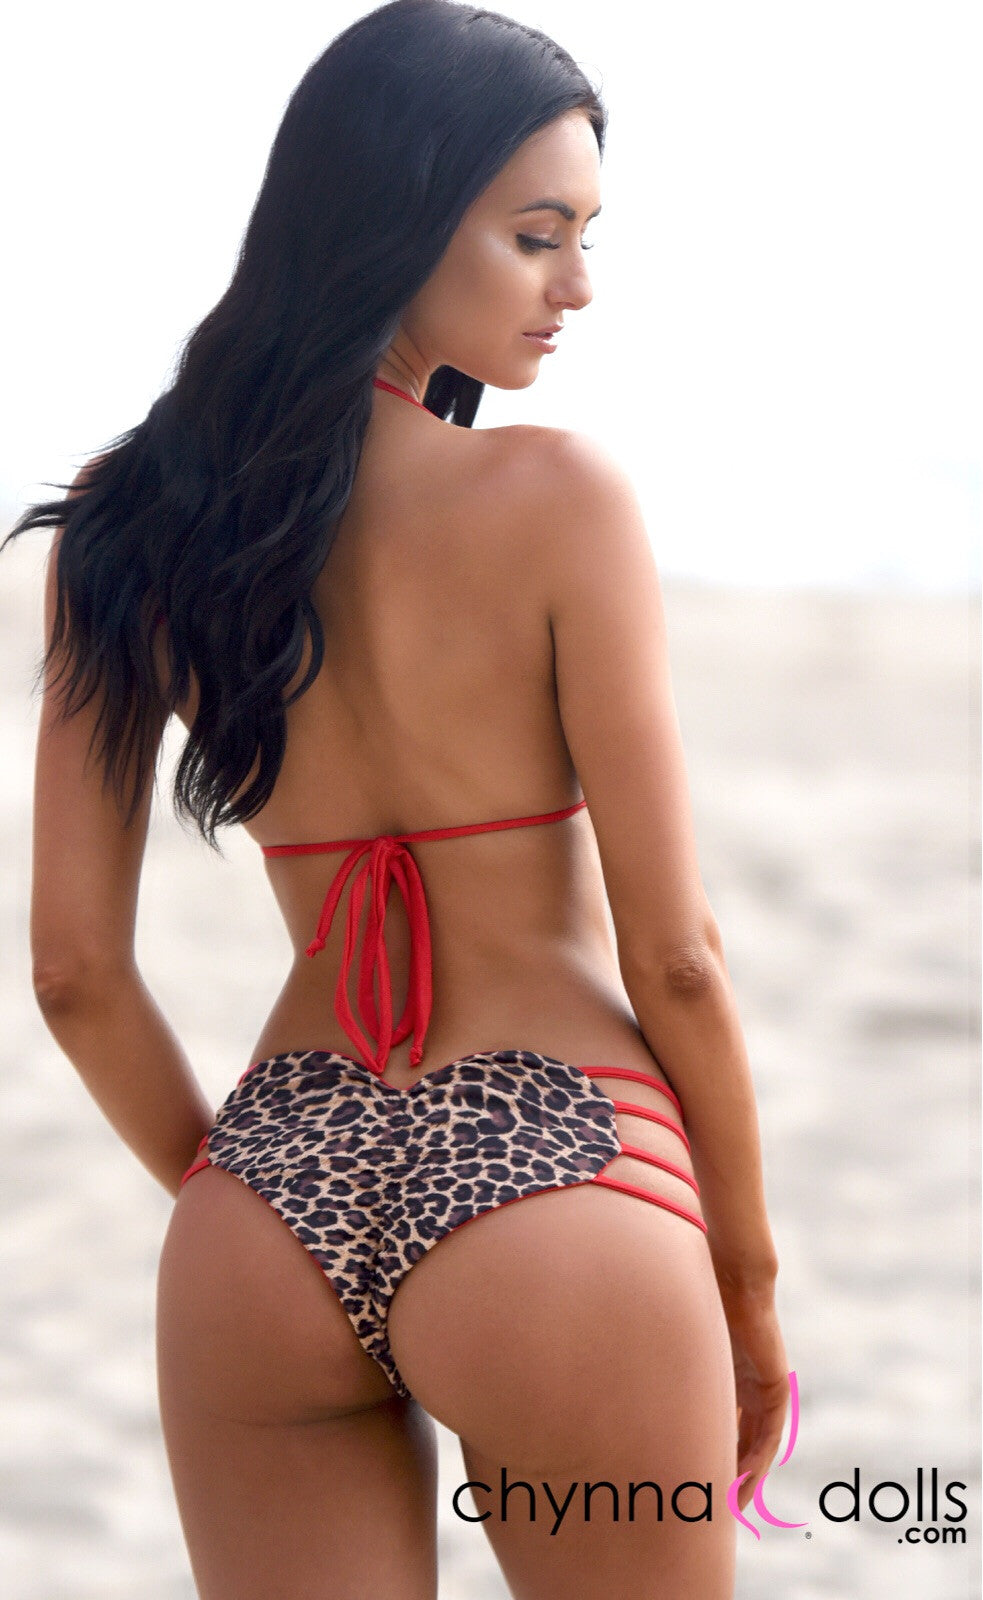 Heart Cake: Heart Shaped Reversible Bikini in Red x Leopard - Chynna Dolls Swimwear